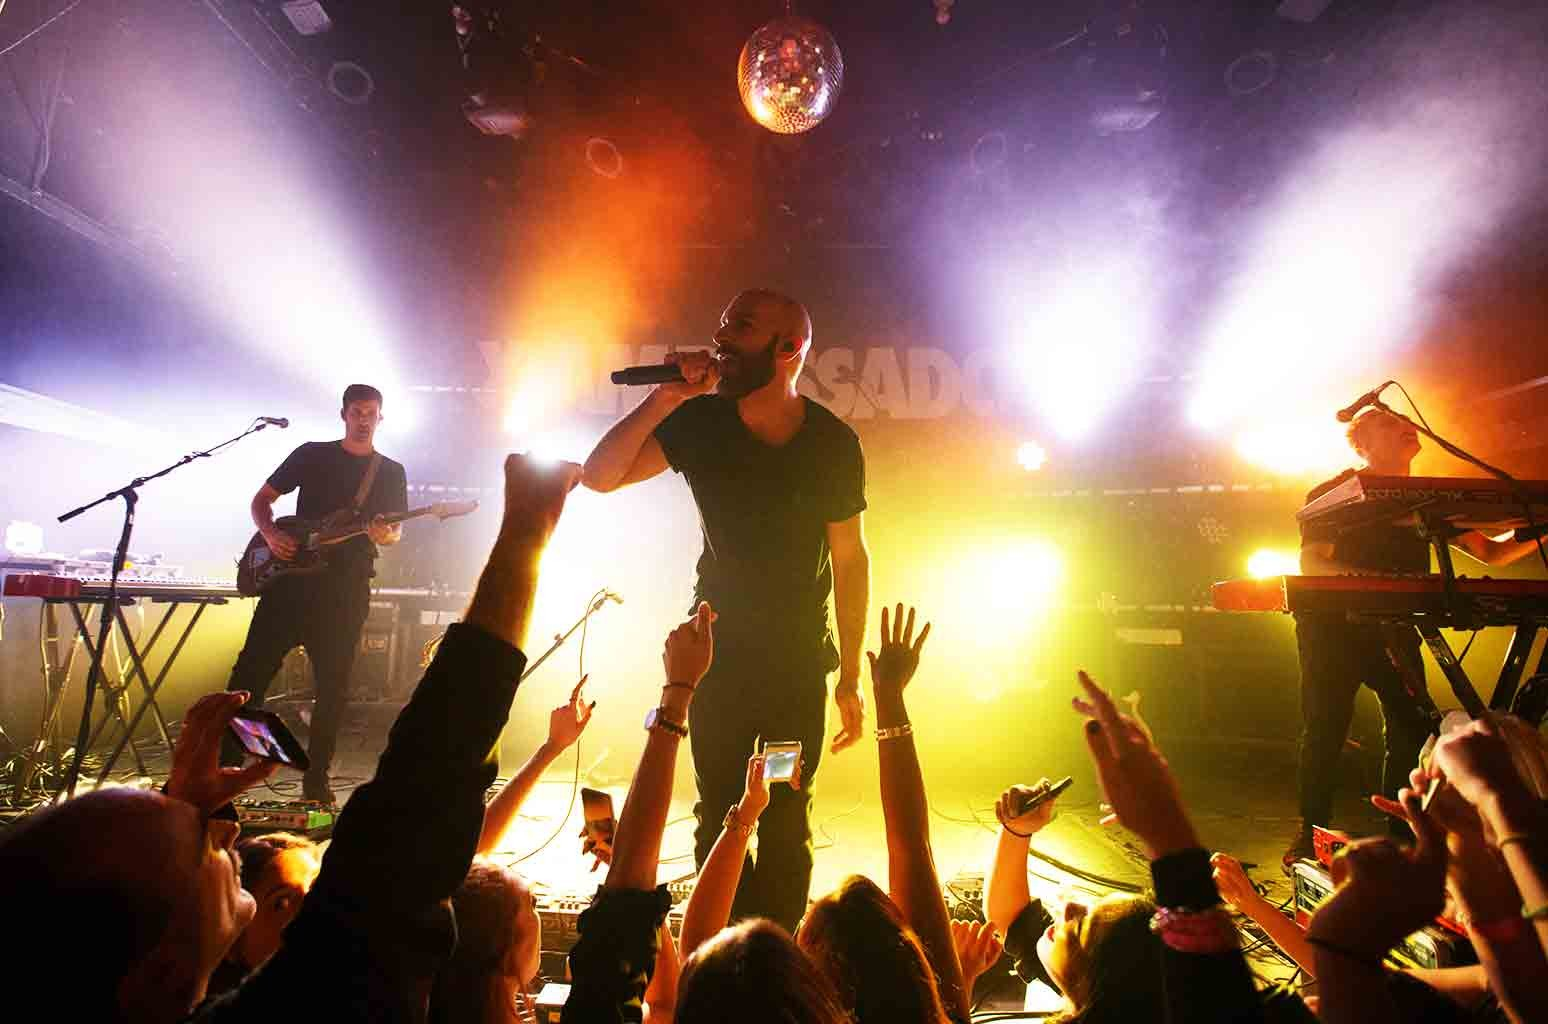 X Ambassadors performs on stage at Bowery Ballroom on Oct. 22, 2015 in New York City.